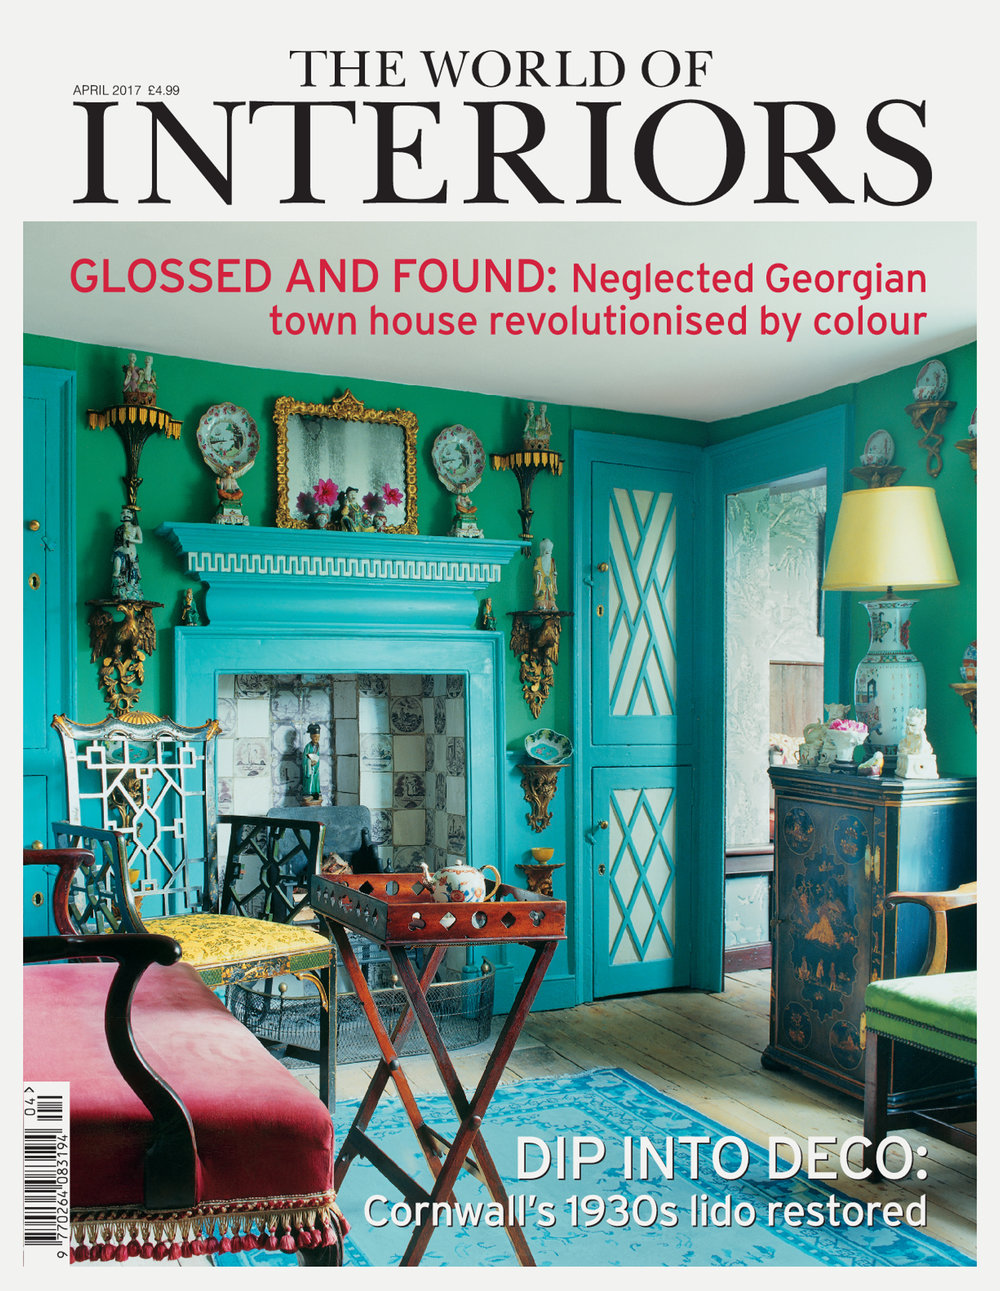 _The World of Interiors - APRIL 2017 cover lr.jpg